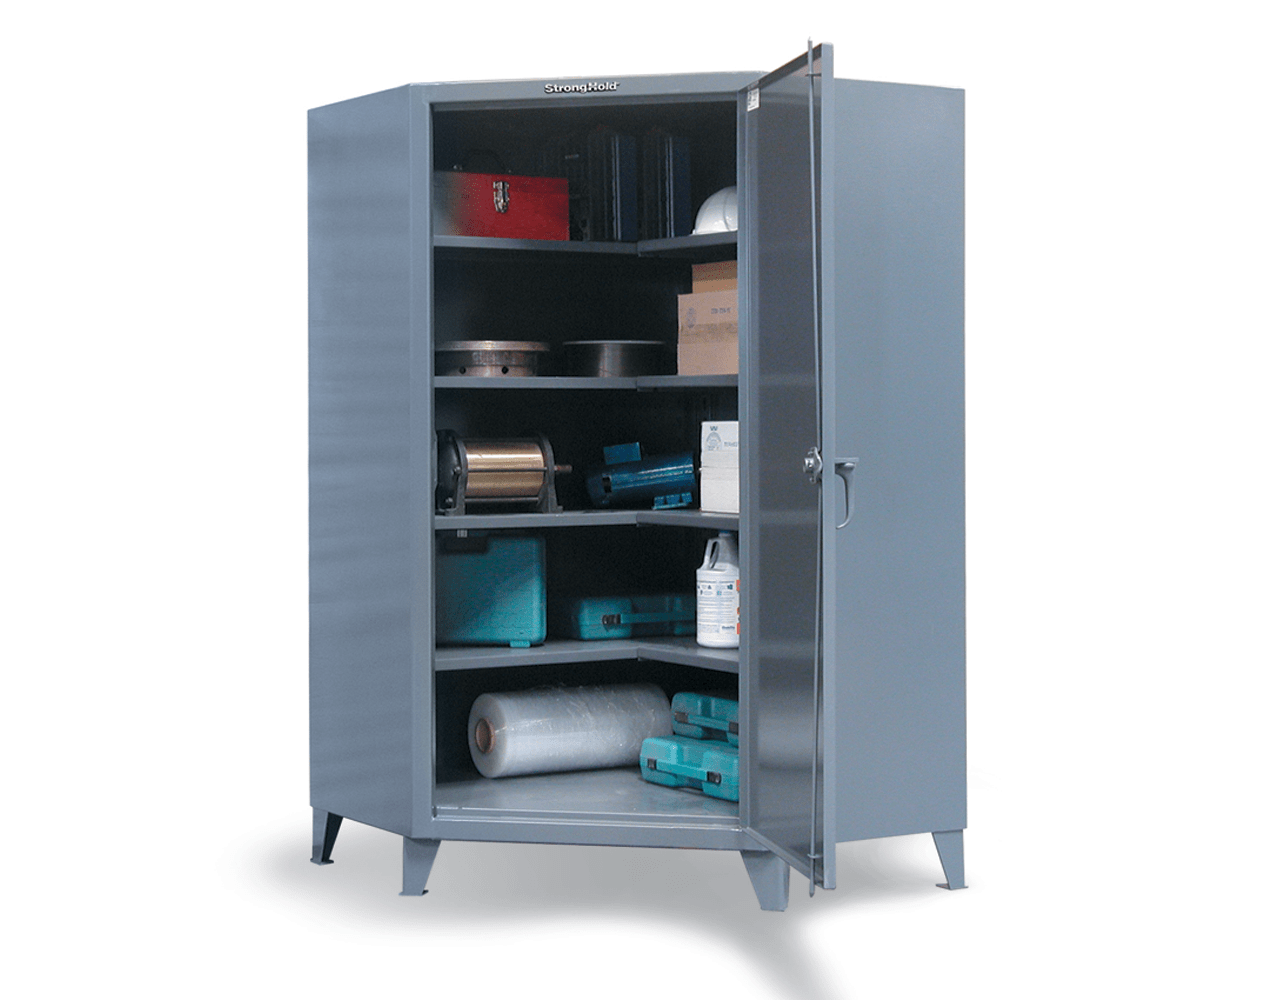 Extra Heavy Duty 12 GA Corner Cabinet with 4 Shelves – 48 In. W x 24 In. D x 78 In. H